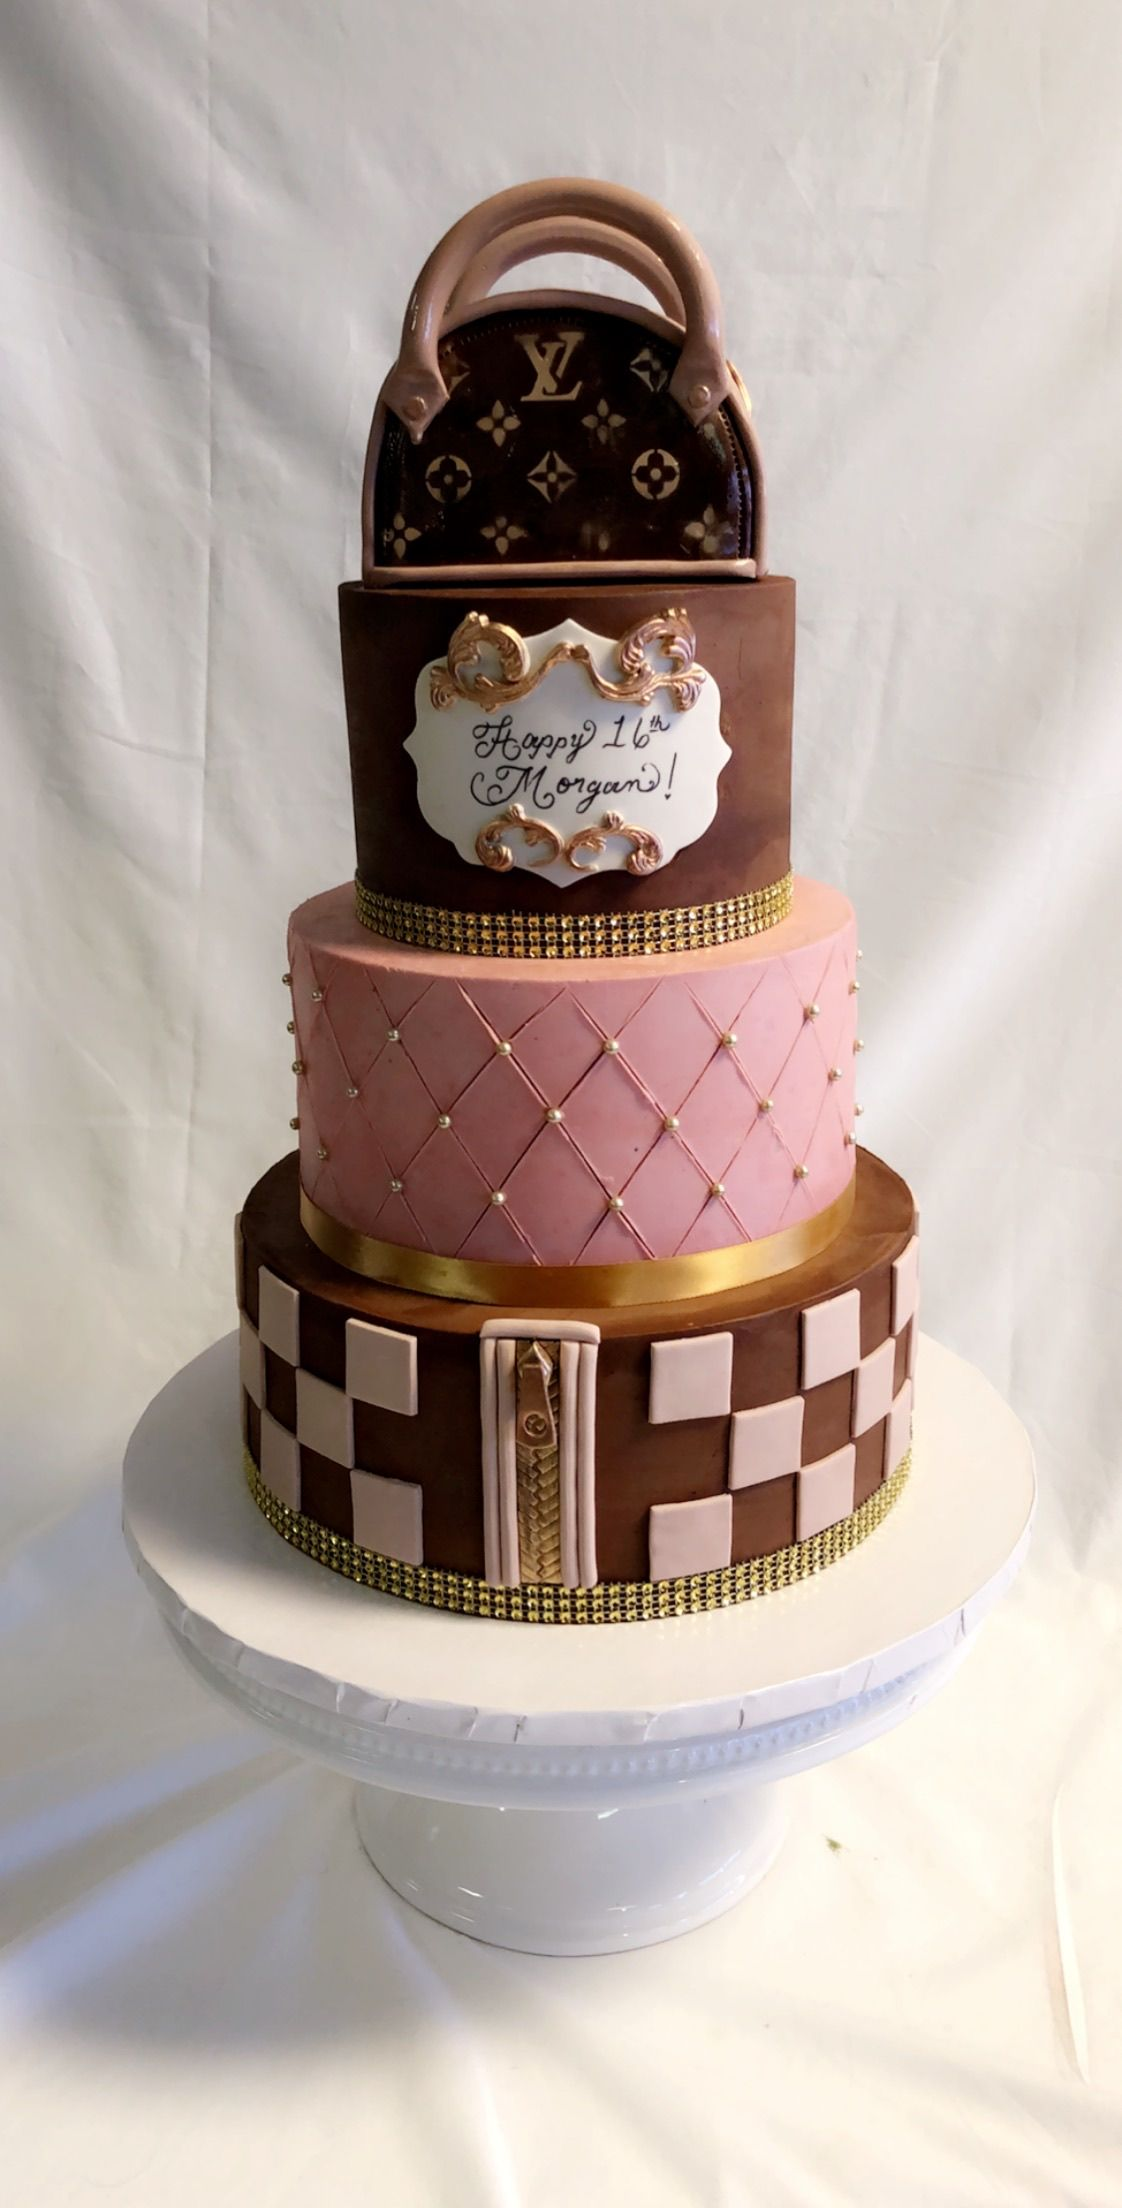 Morgan S Louis Vuitton Cake For Her 16th Birthday With Images